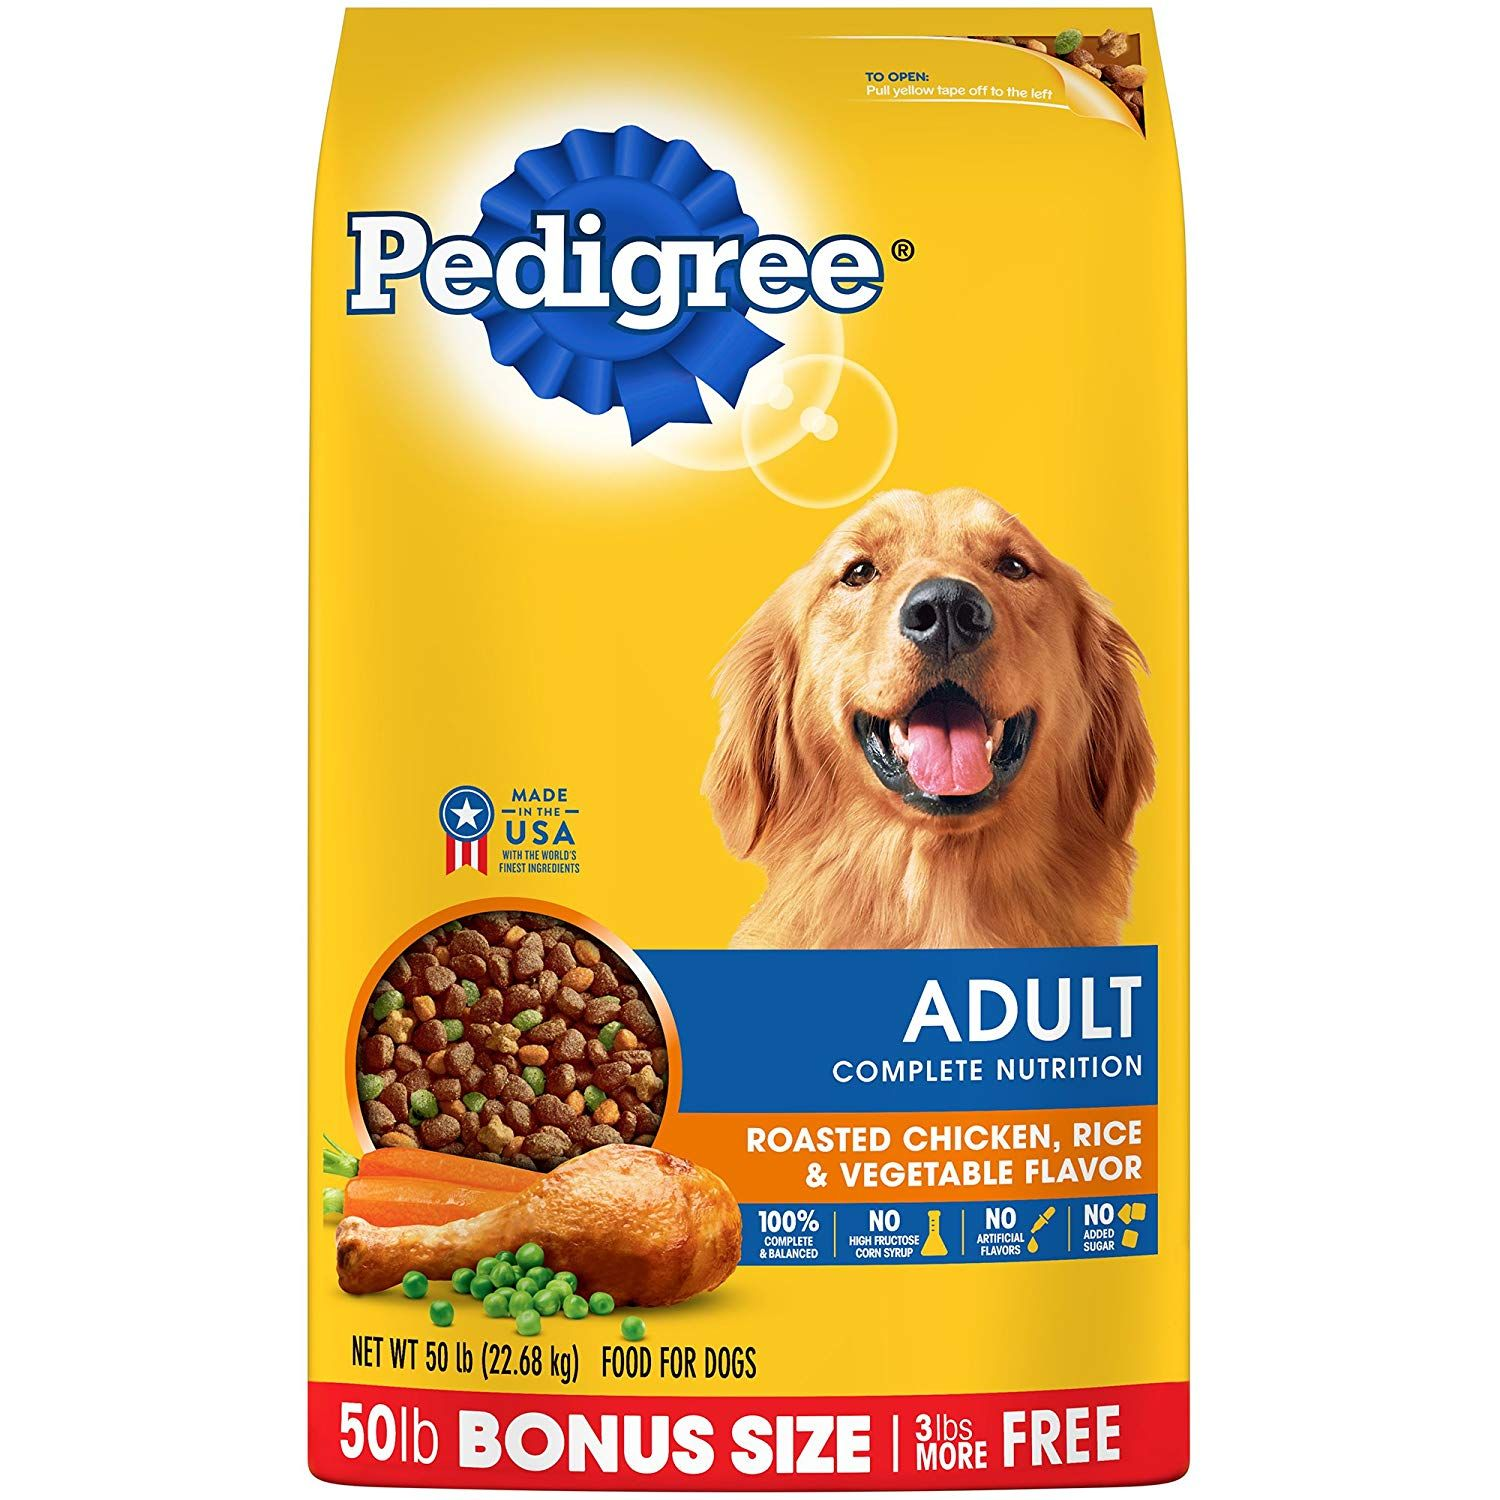 Pedigree Adult Complete Nutrition Roasted Chicken Rice And